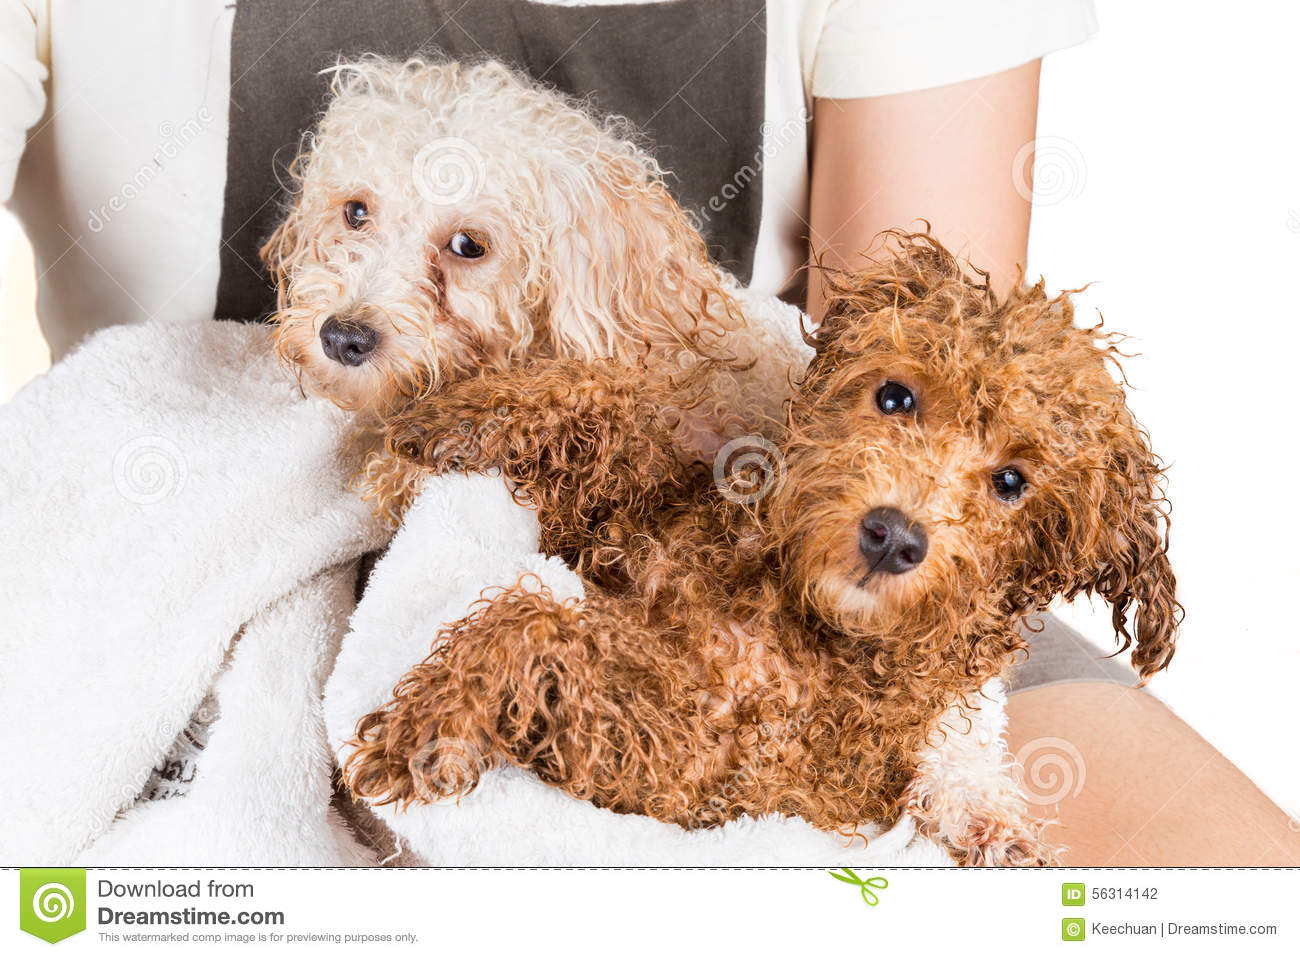 Cute Wet Poodle Puppies Wrapped In Towel After Shower Stock Photo